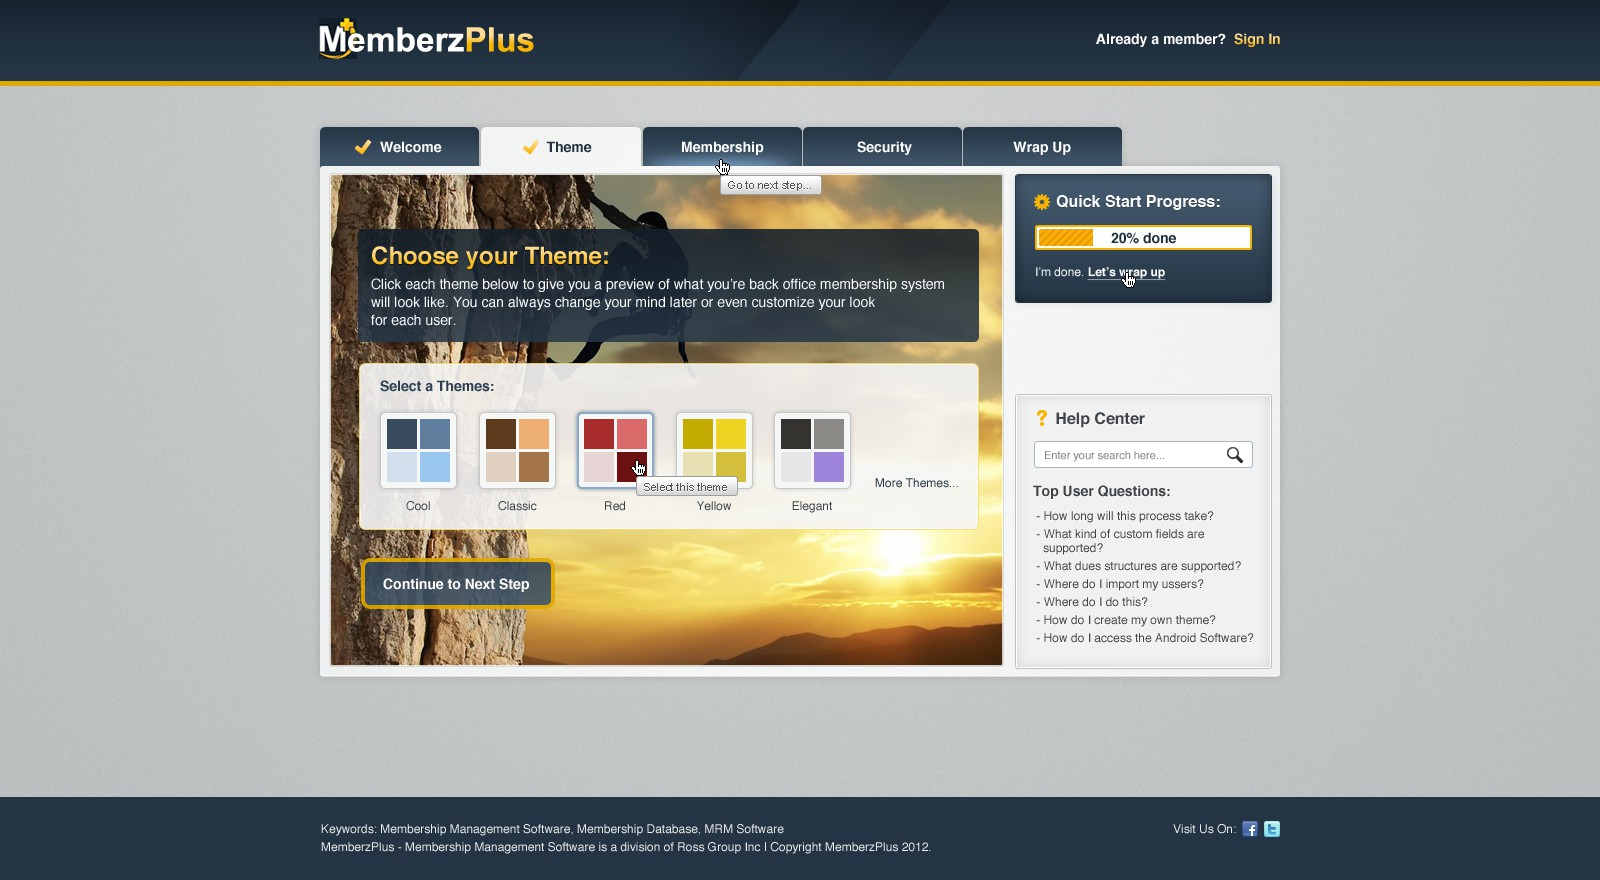 Create the next website design for MemberzPlus - A Division of Ross Group Inc